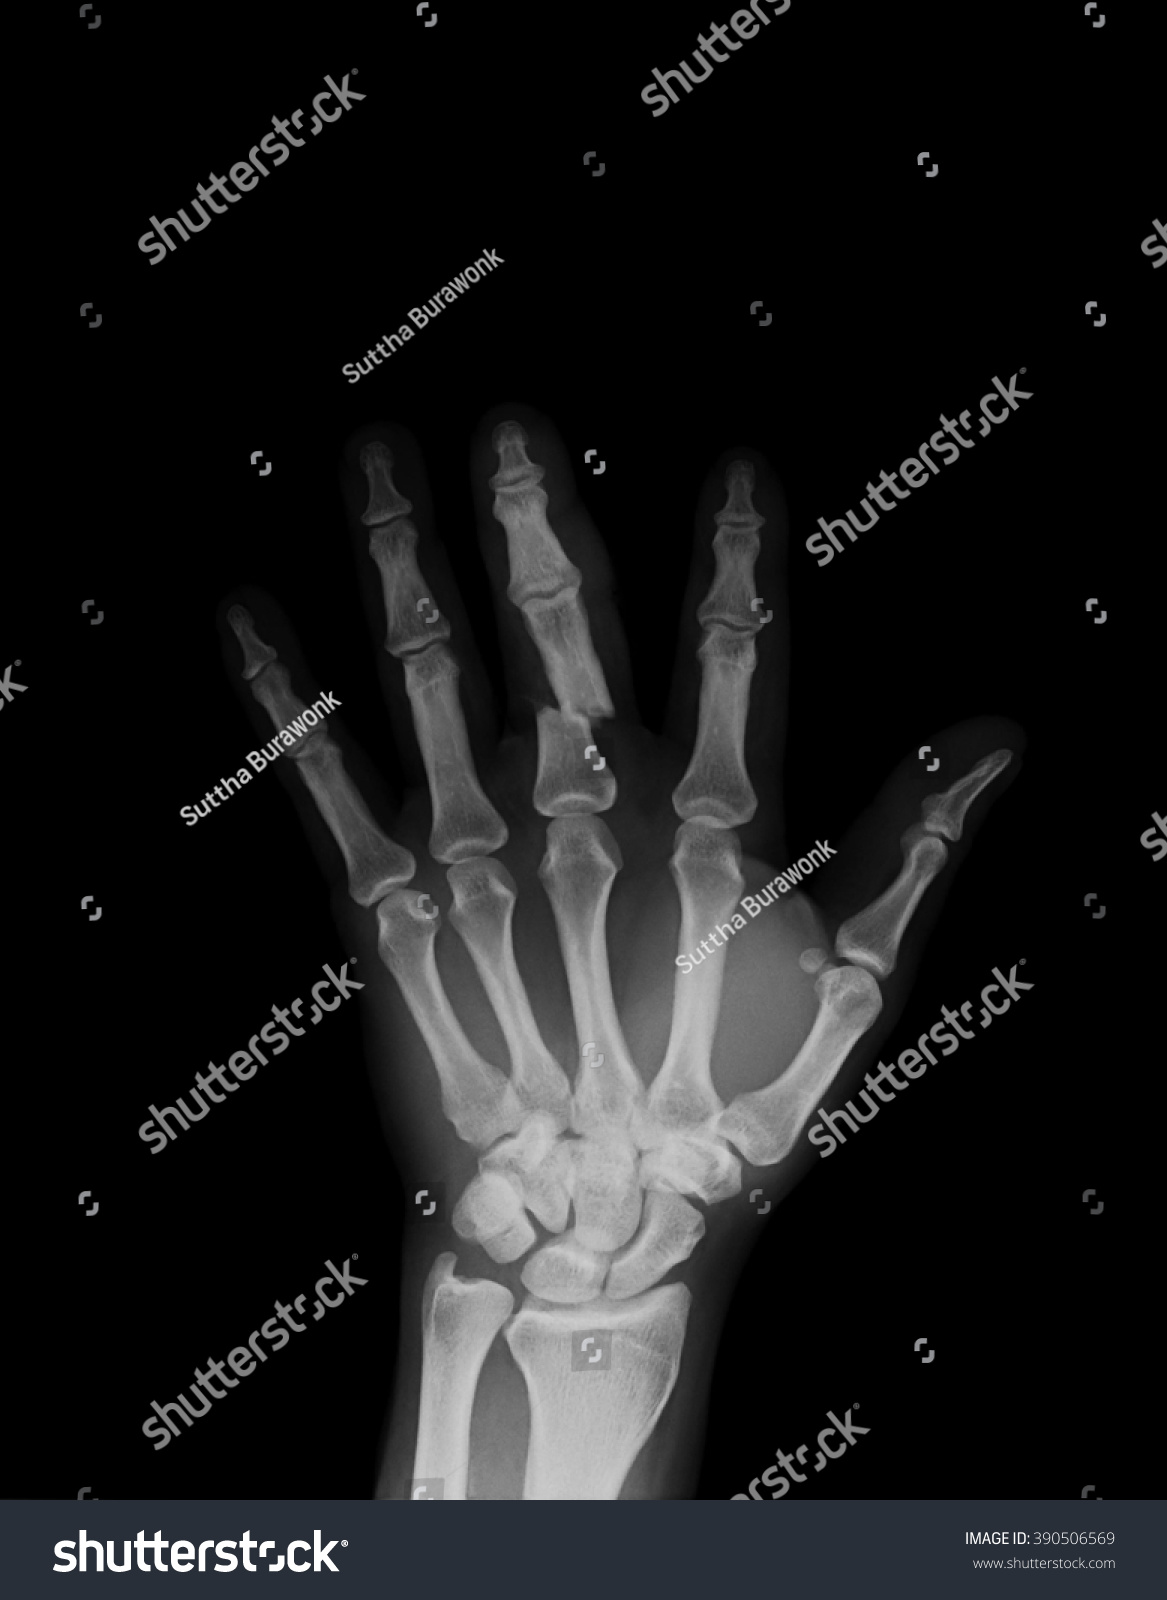 Digital elbow with wooden splint x-ray image showing lower humerus ...